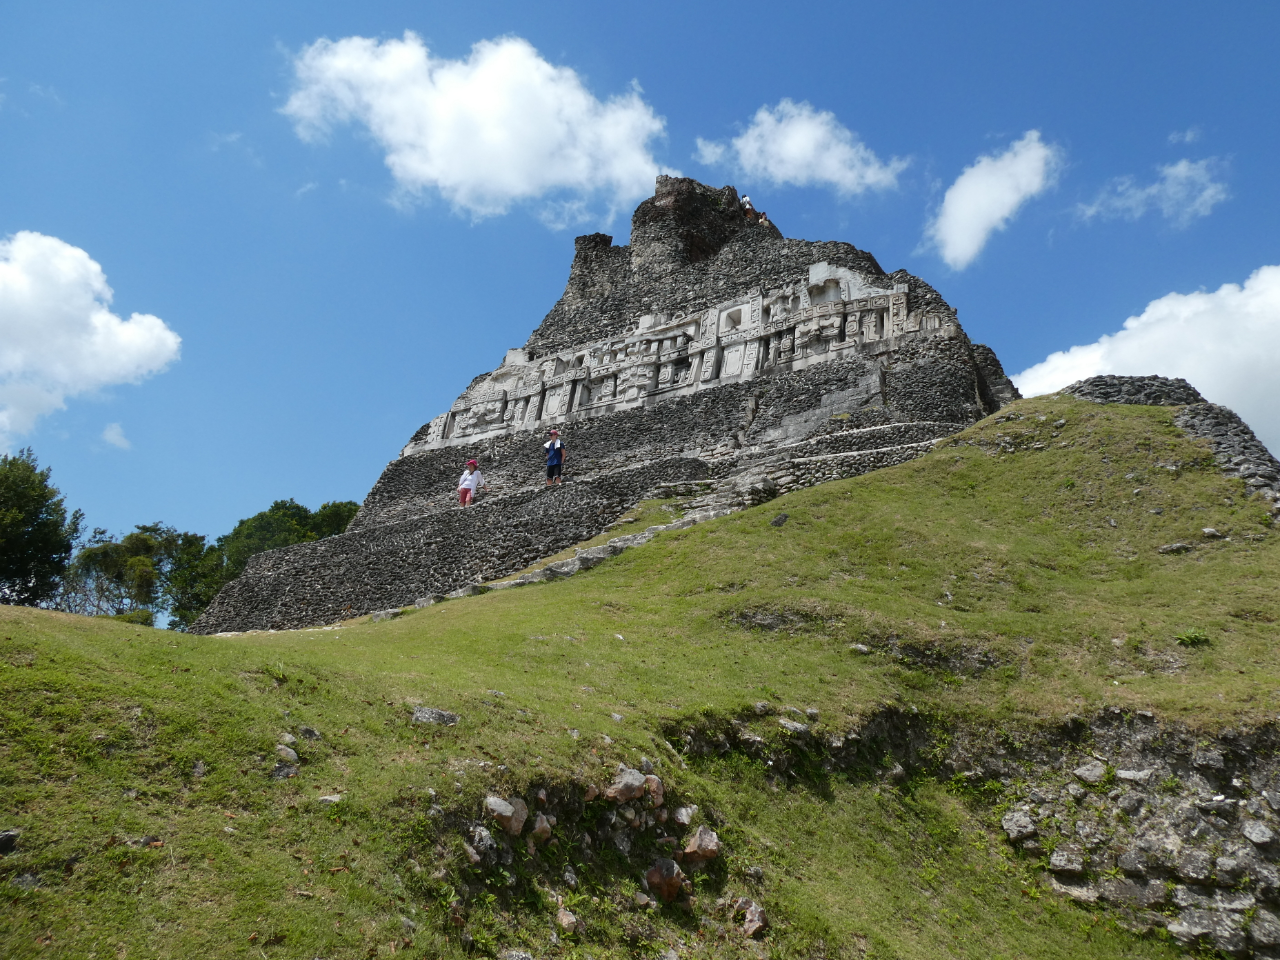 Photo 1: Site de Xunantunich au Belize